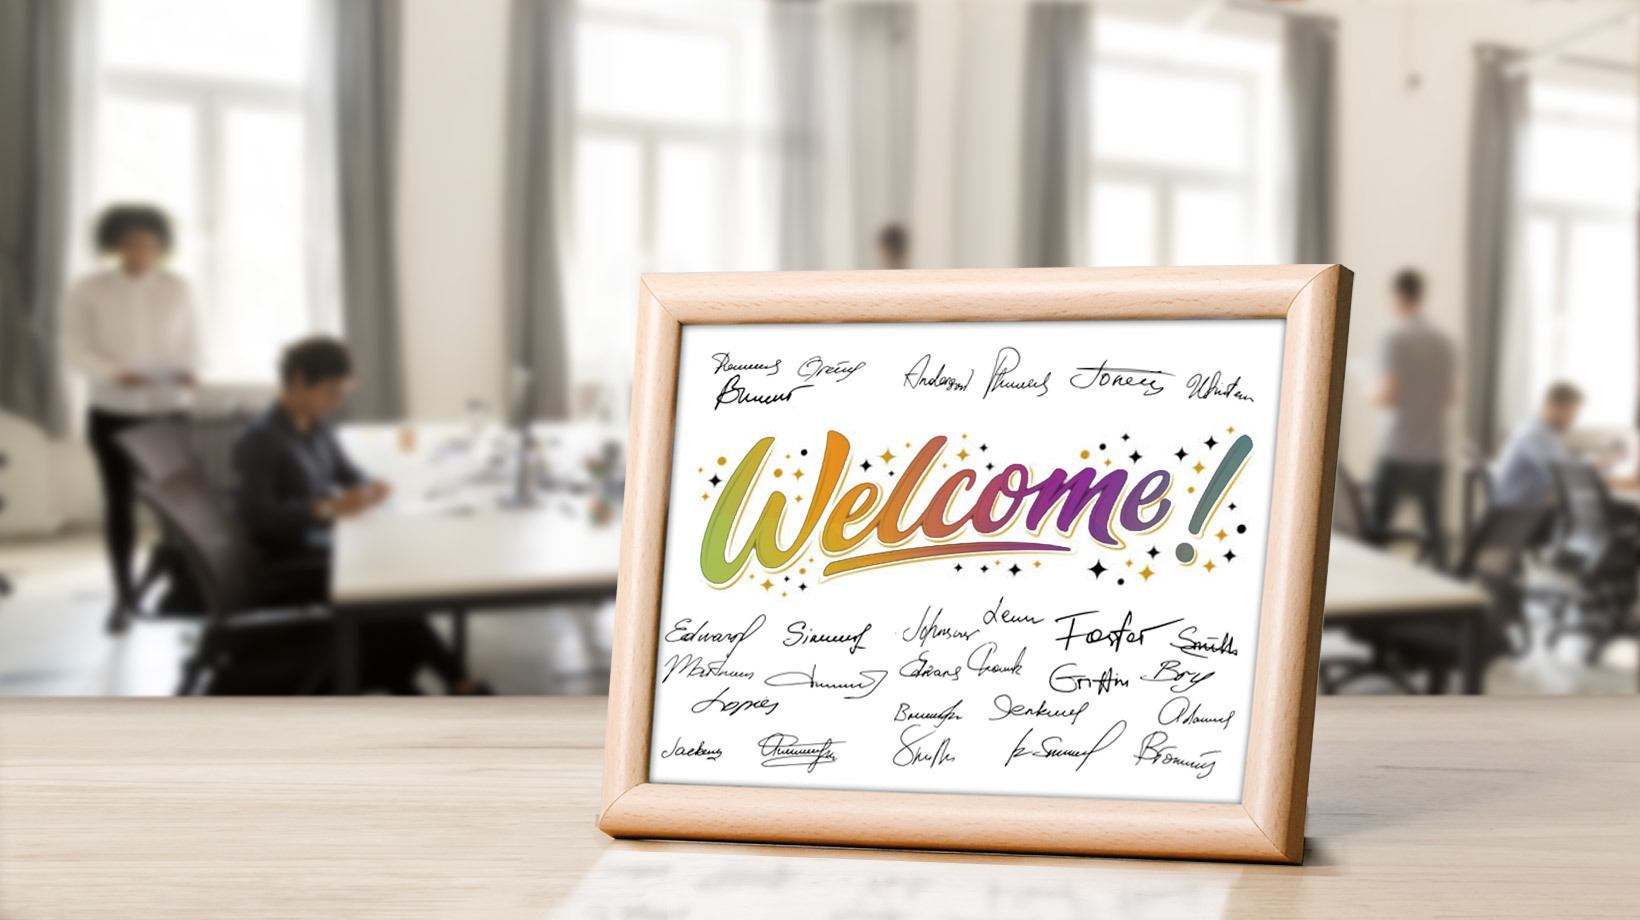 Improve The Employee Onboarding Experience